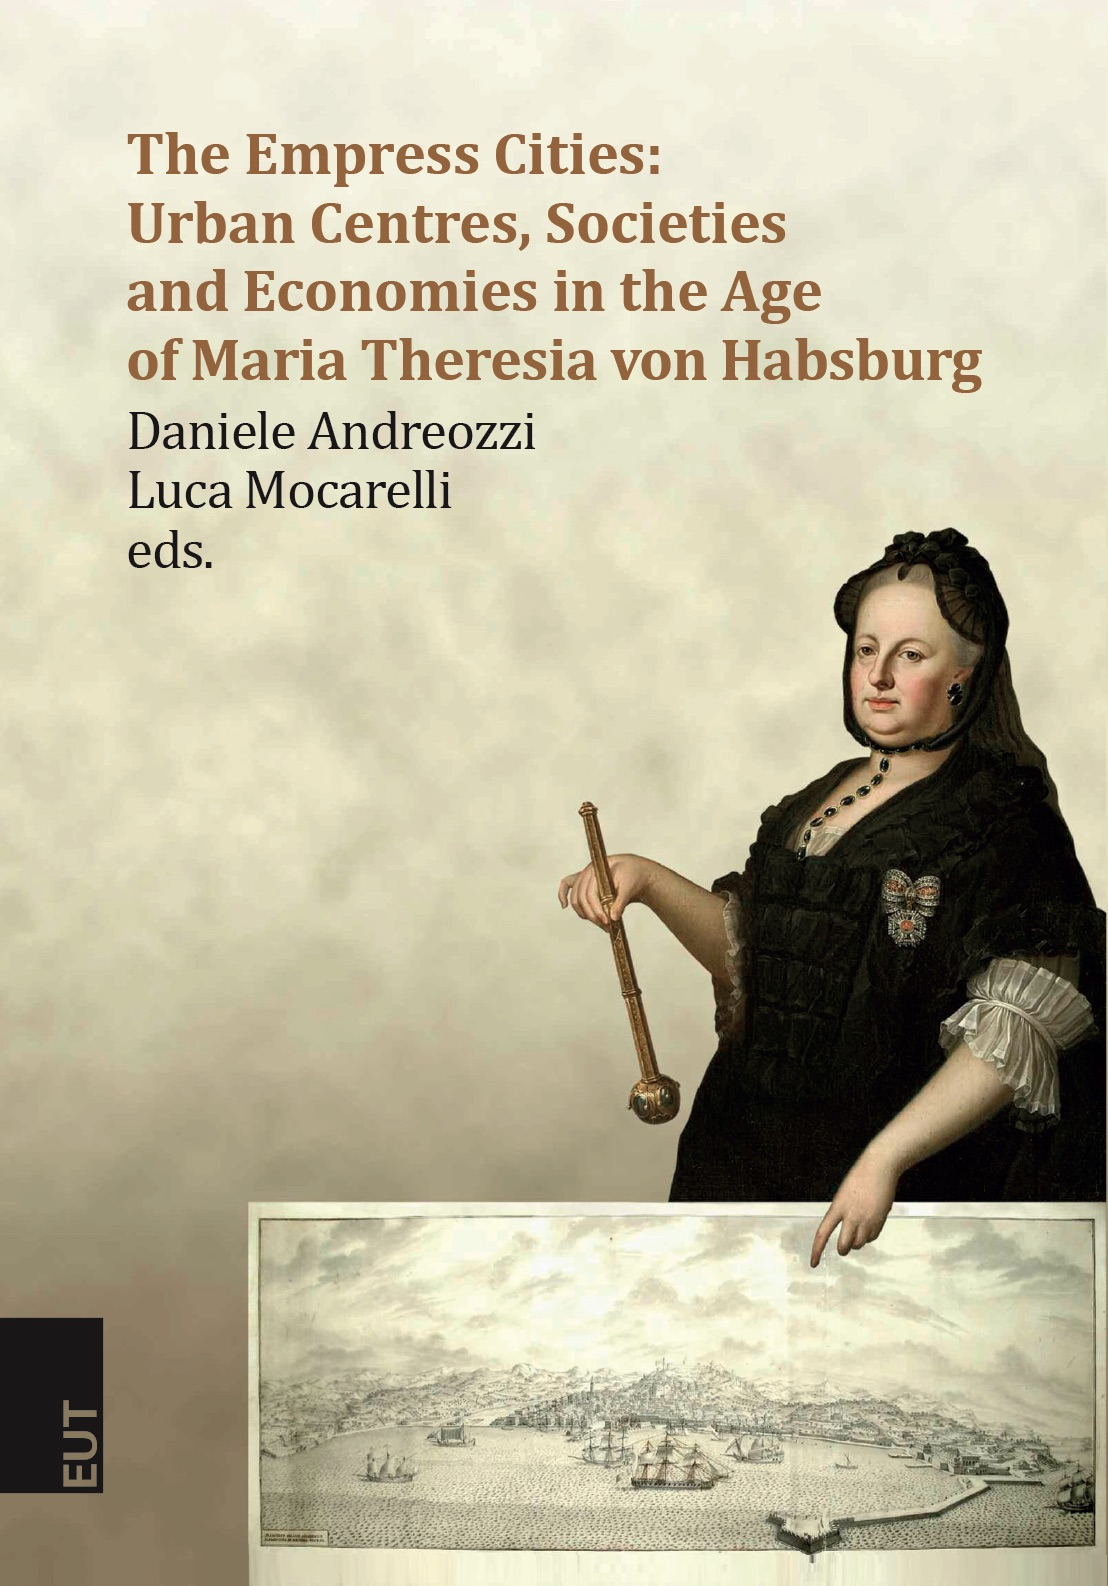 The Empress Cities: Urban Centres, Societies and Economies in the Age of Maria Theresia von Habsburg